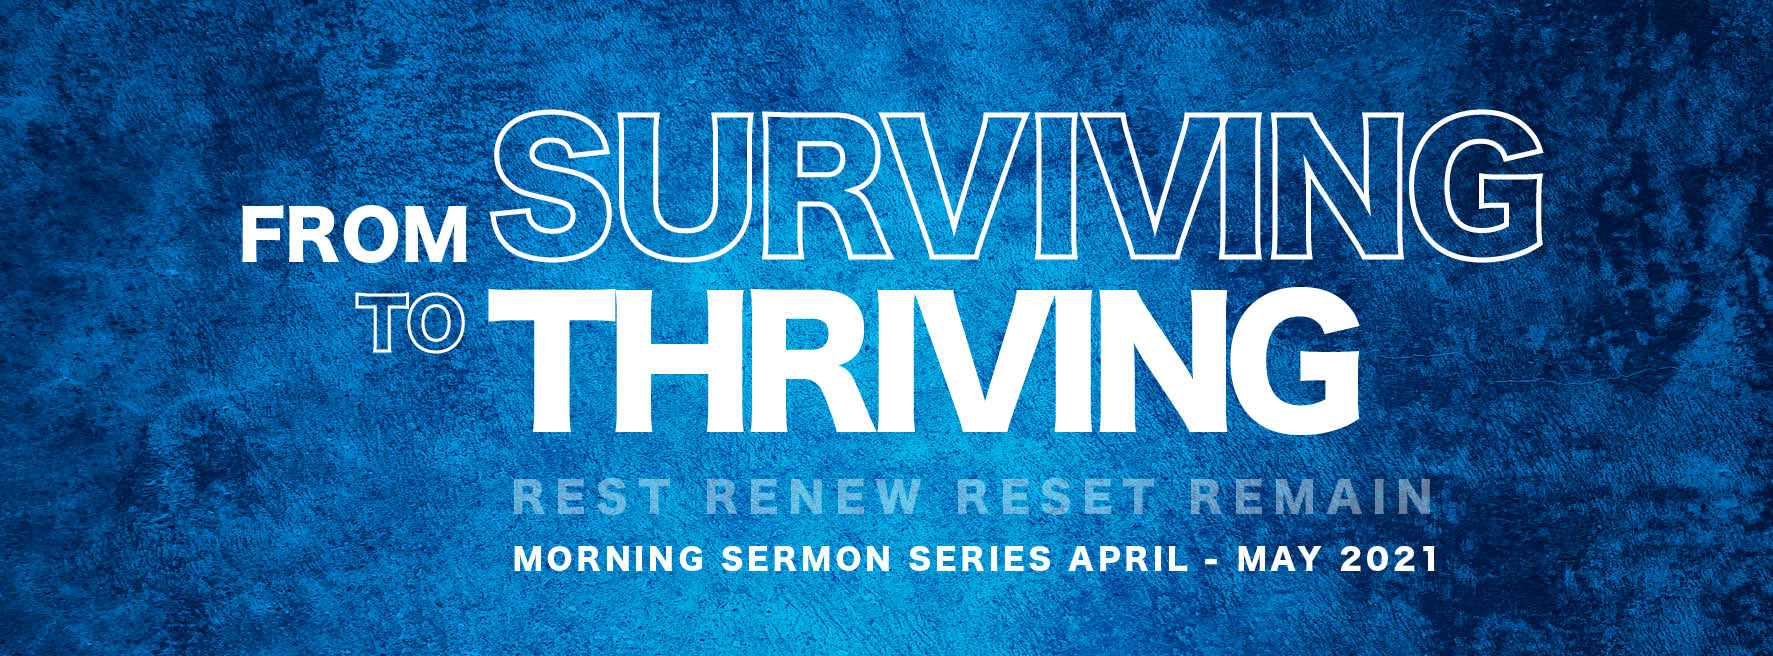 From surviving to Thriving Apr